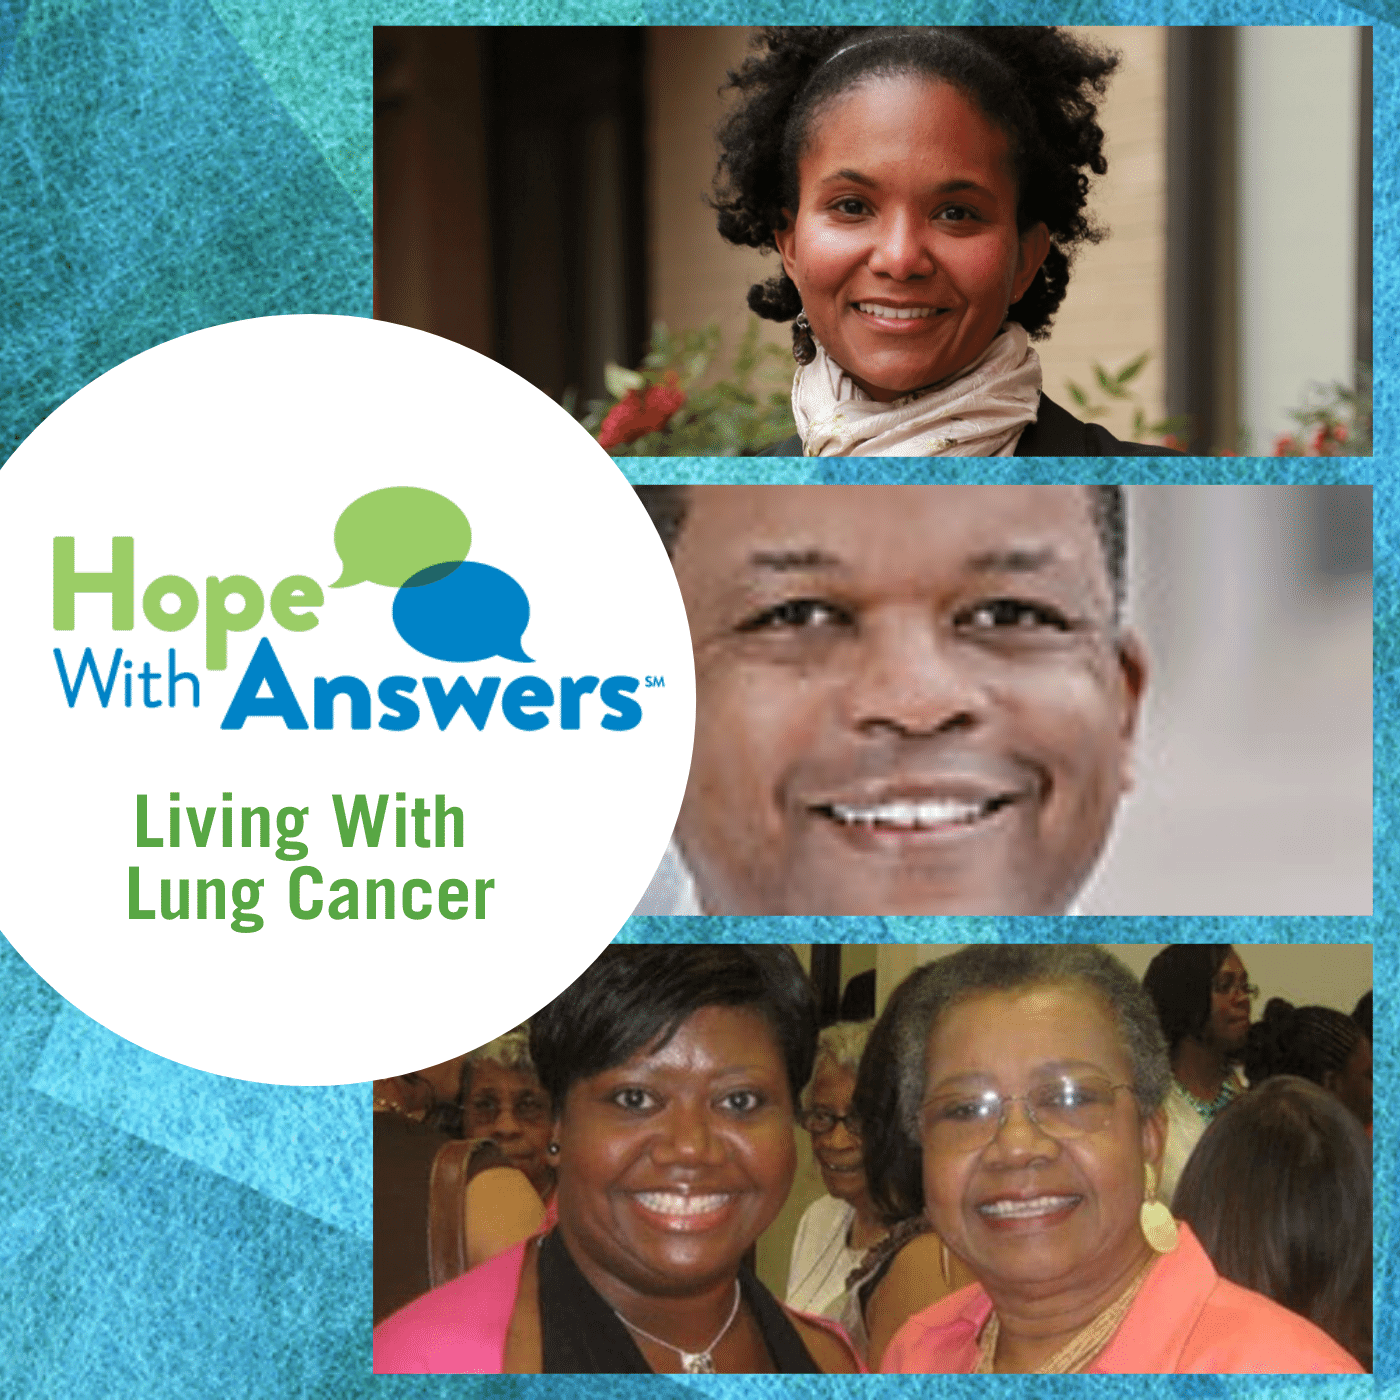 Photos of Hope With Answers Episode 13 guests